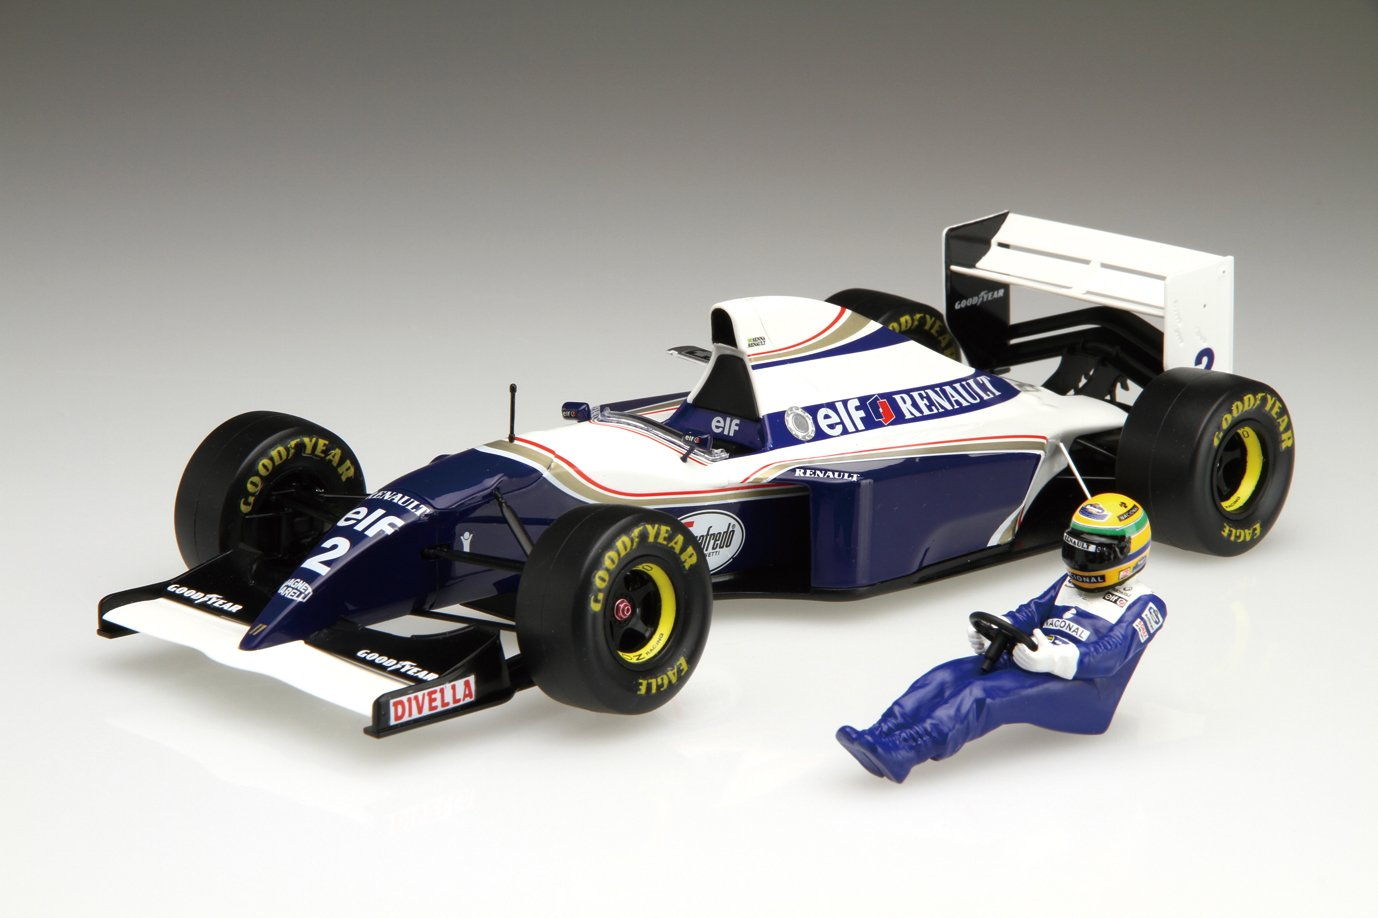 20. Grand-Prix-Serie SPOT No.39 Williams FW16 Brasilien GP Fahrer mit Bild